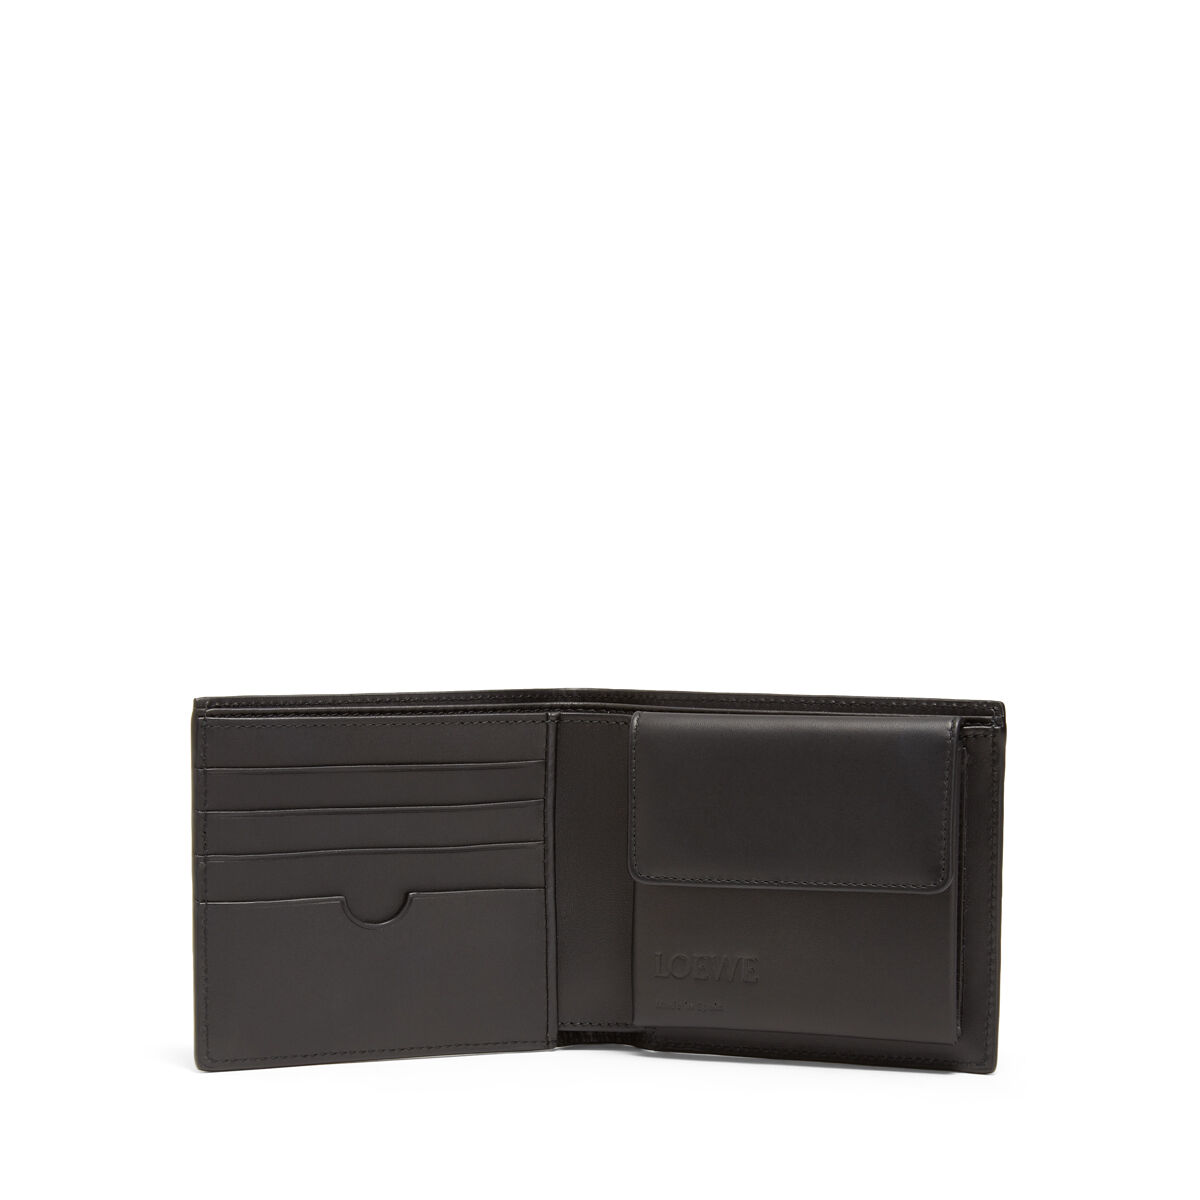 LOEWE Bifold/Coin Wallet Vetiver/Black all